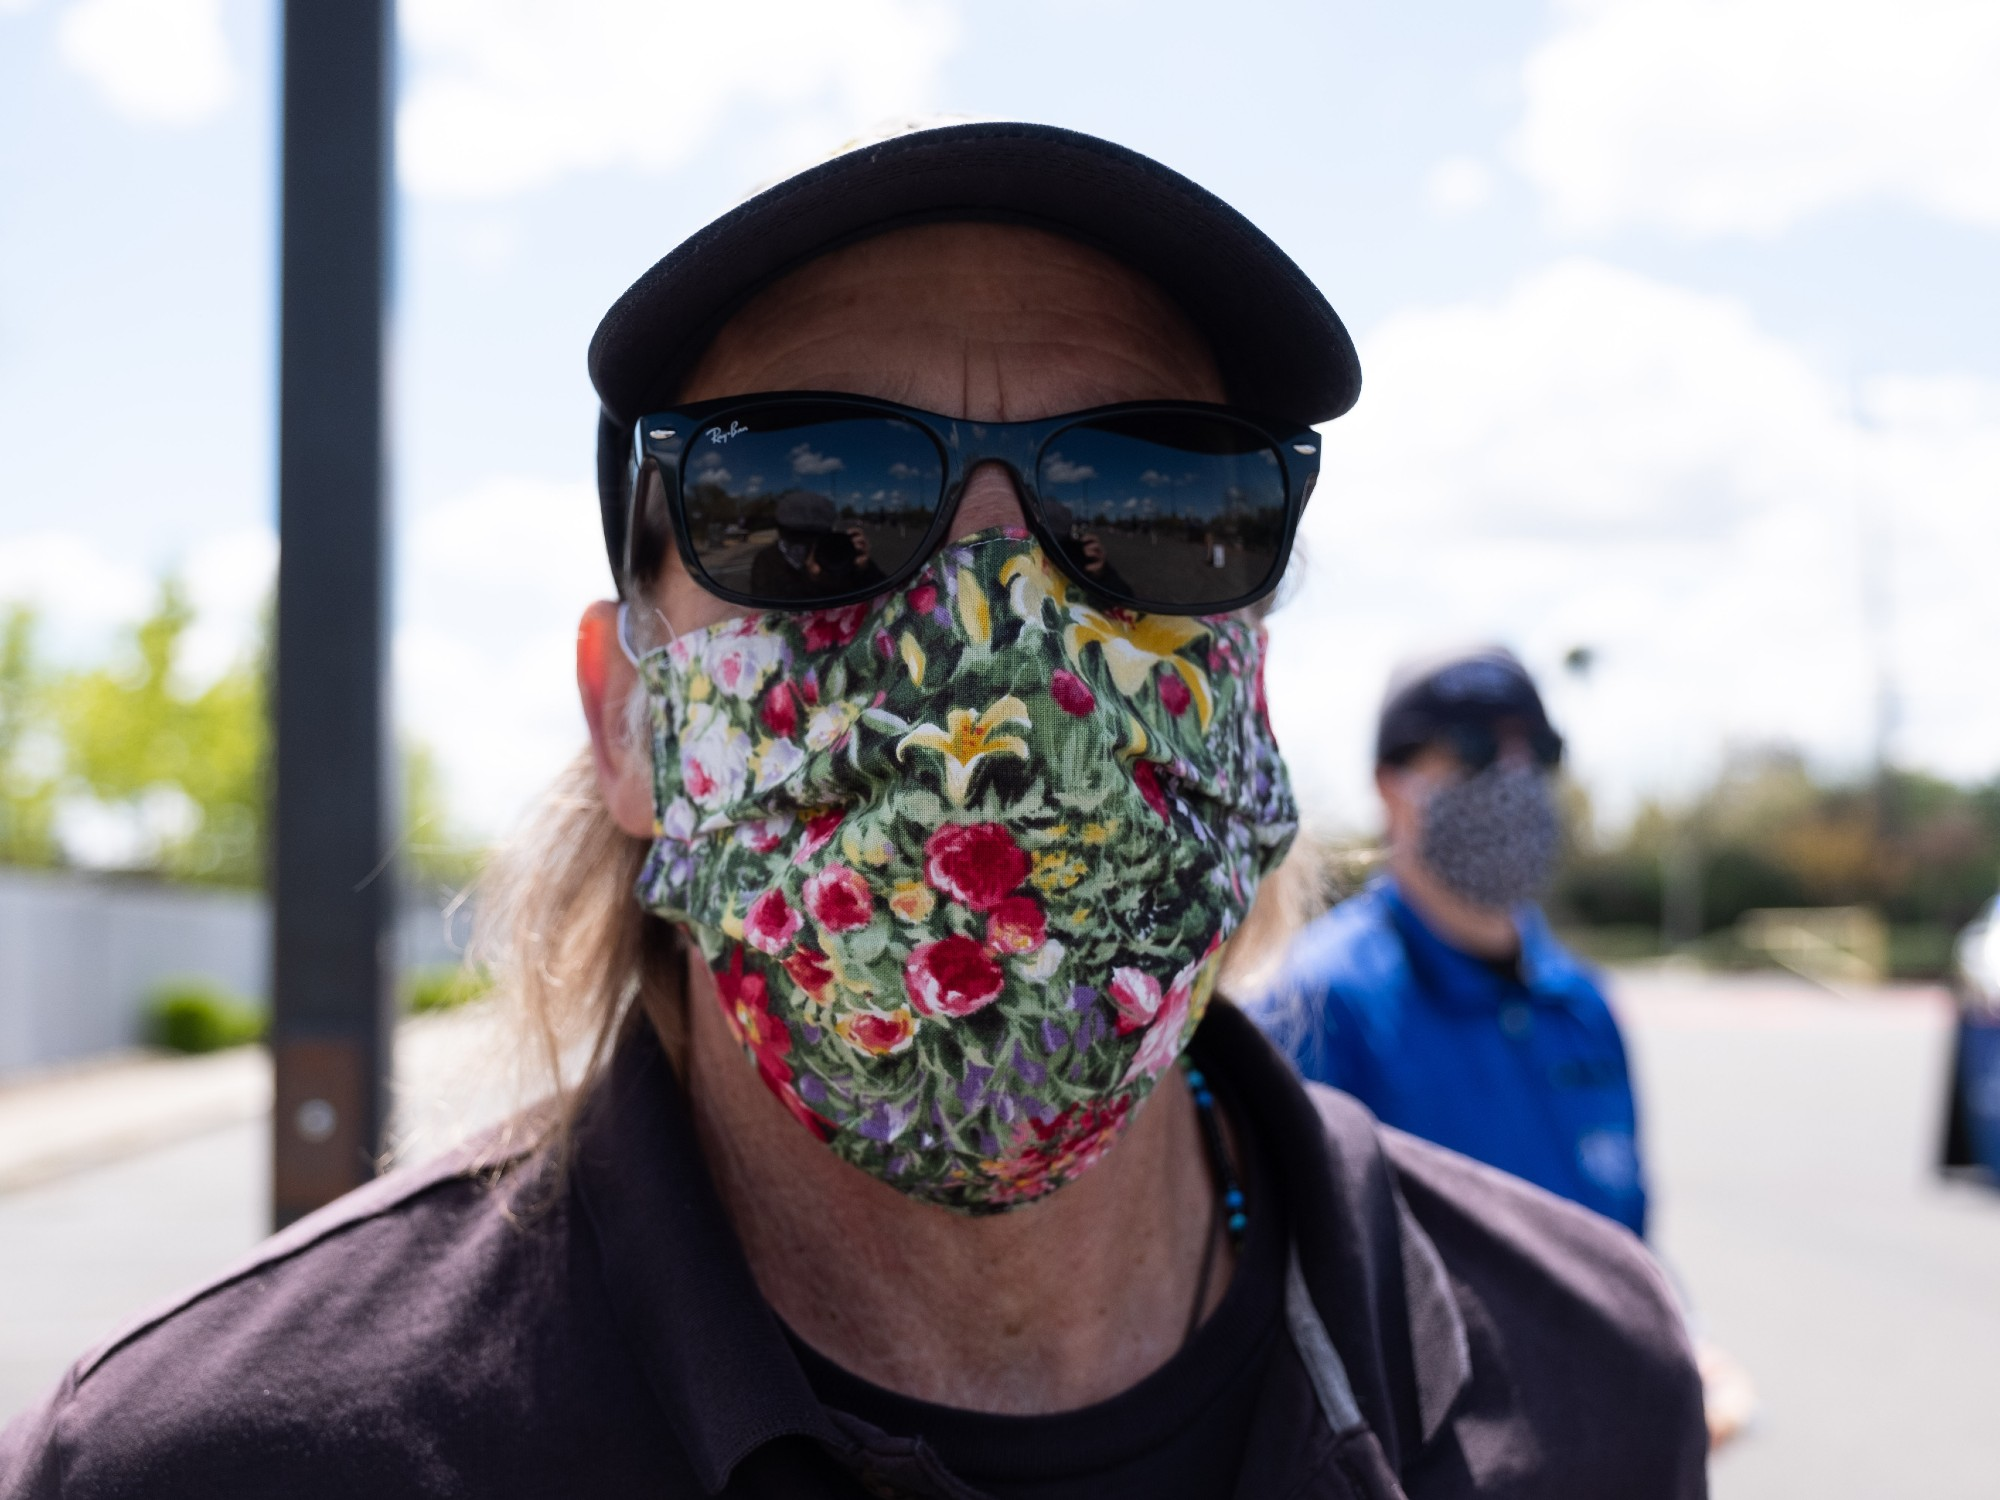 We Re All Wearing Cloth Masks Now But What Cloth Should You Use